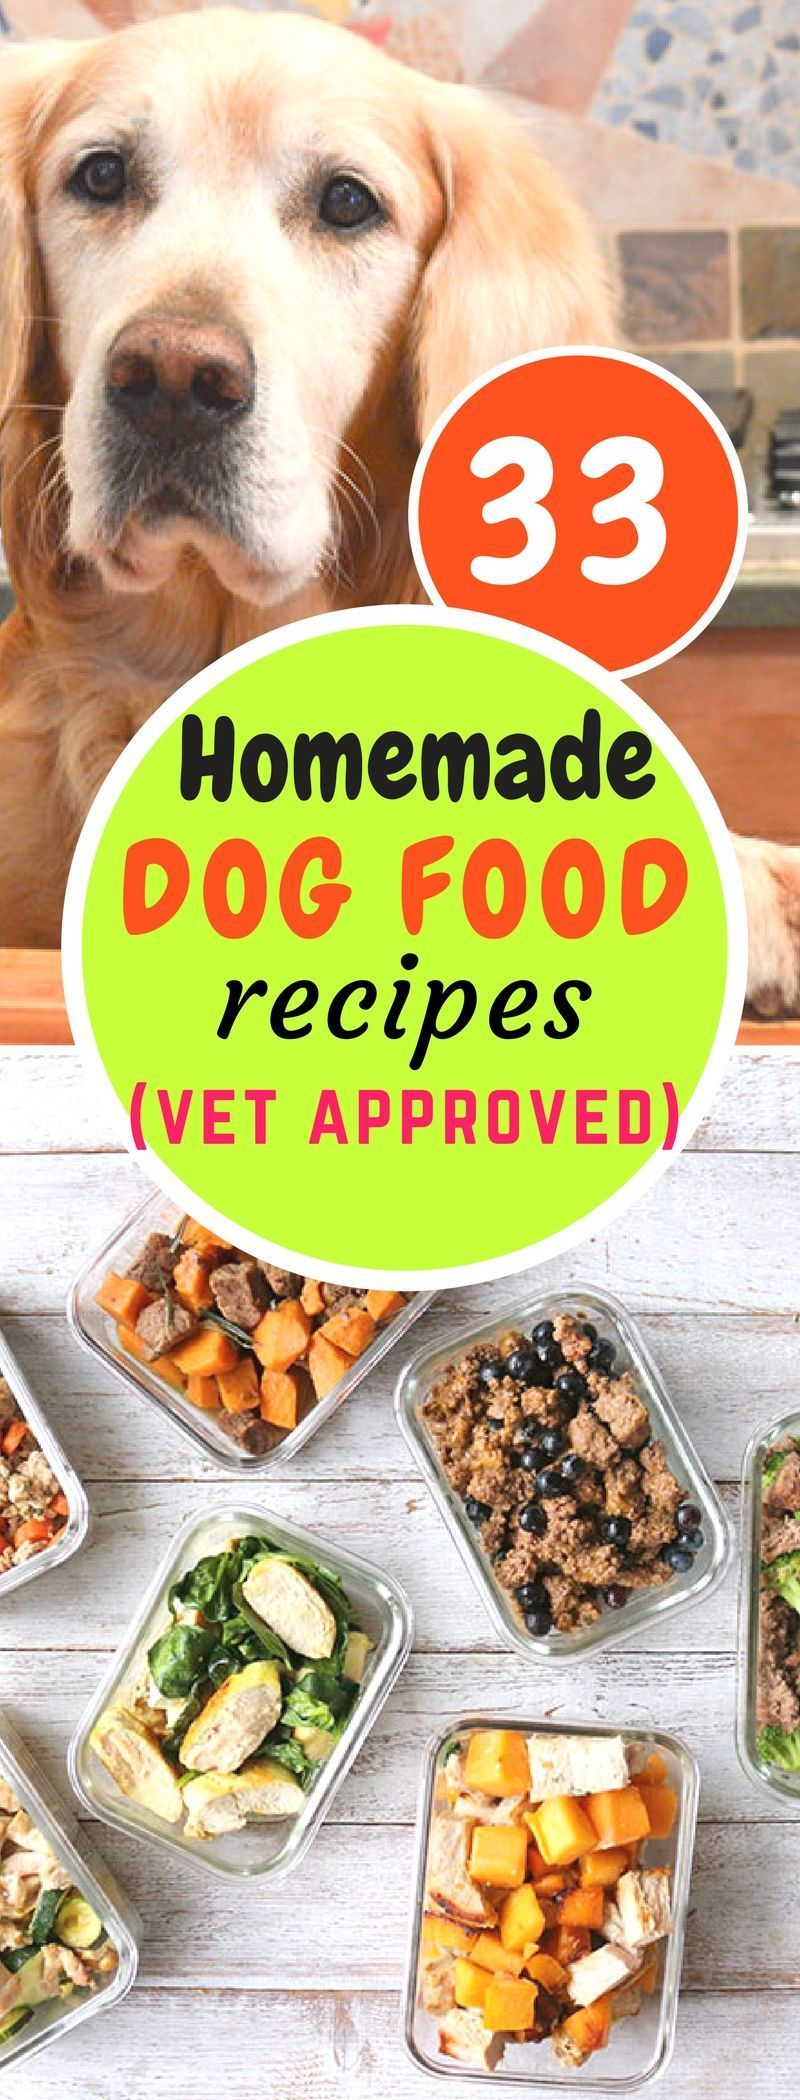 33 best homemade dog food recipes that are vet approved